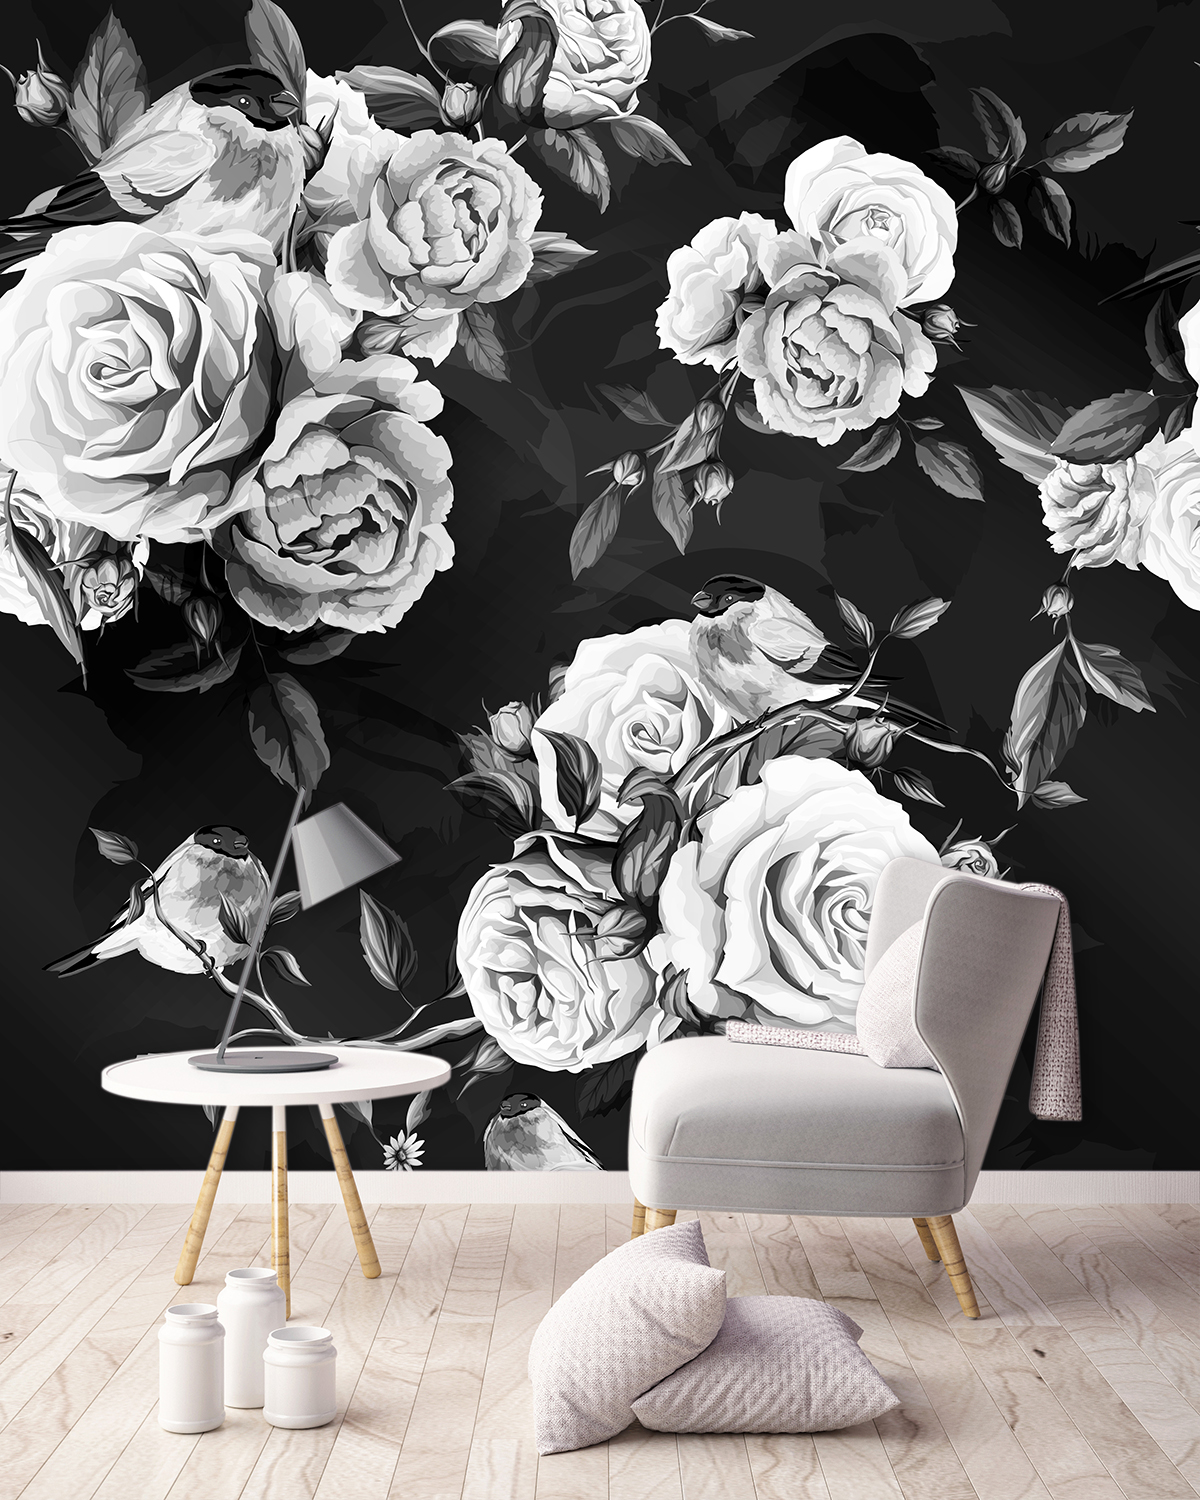 Image of Ilaria large scale floral pattern wallpaper mural design from forthefloorandmore.com used in a blog post about this years hot trend of large scale floral wallpapers.